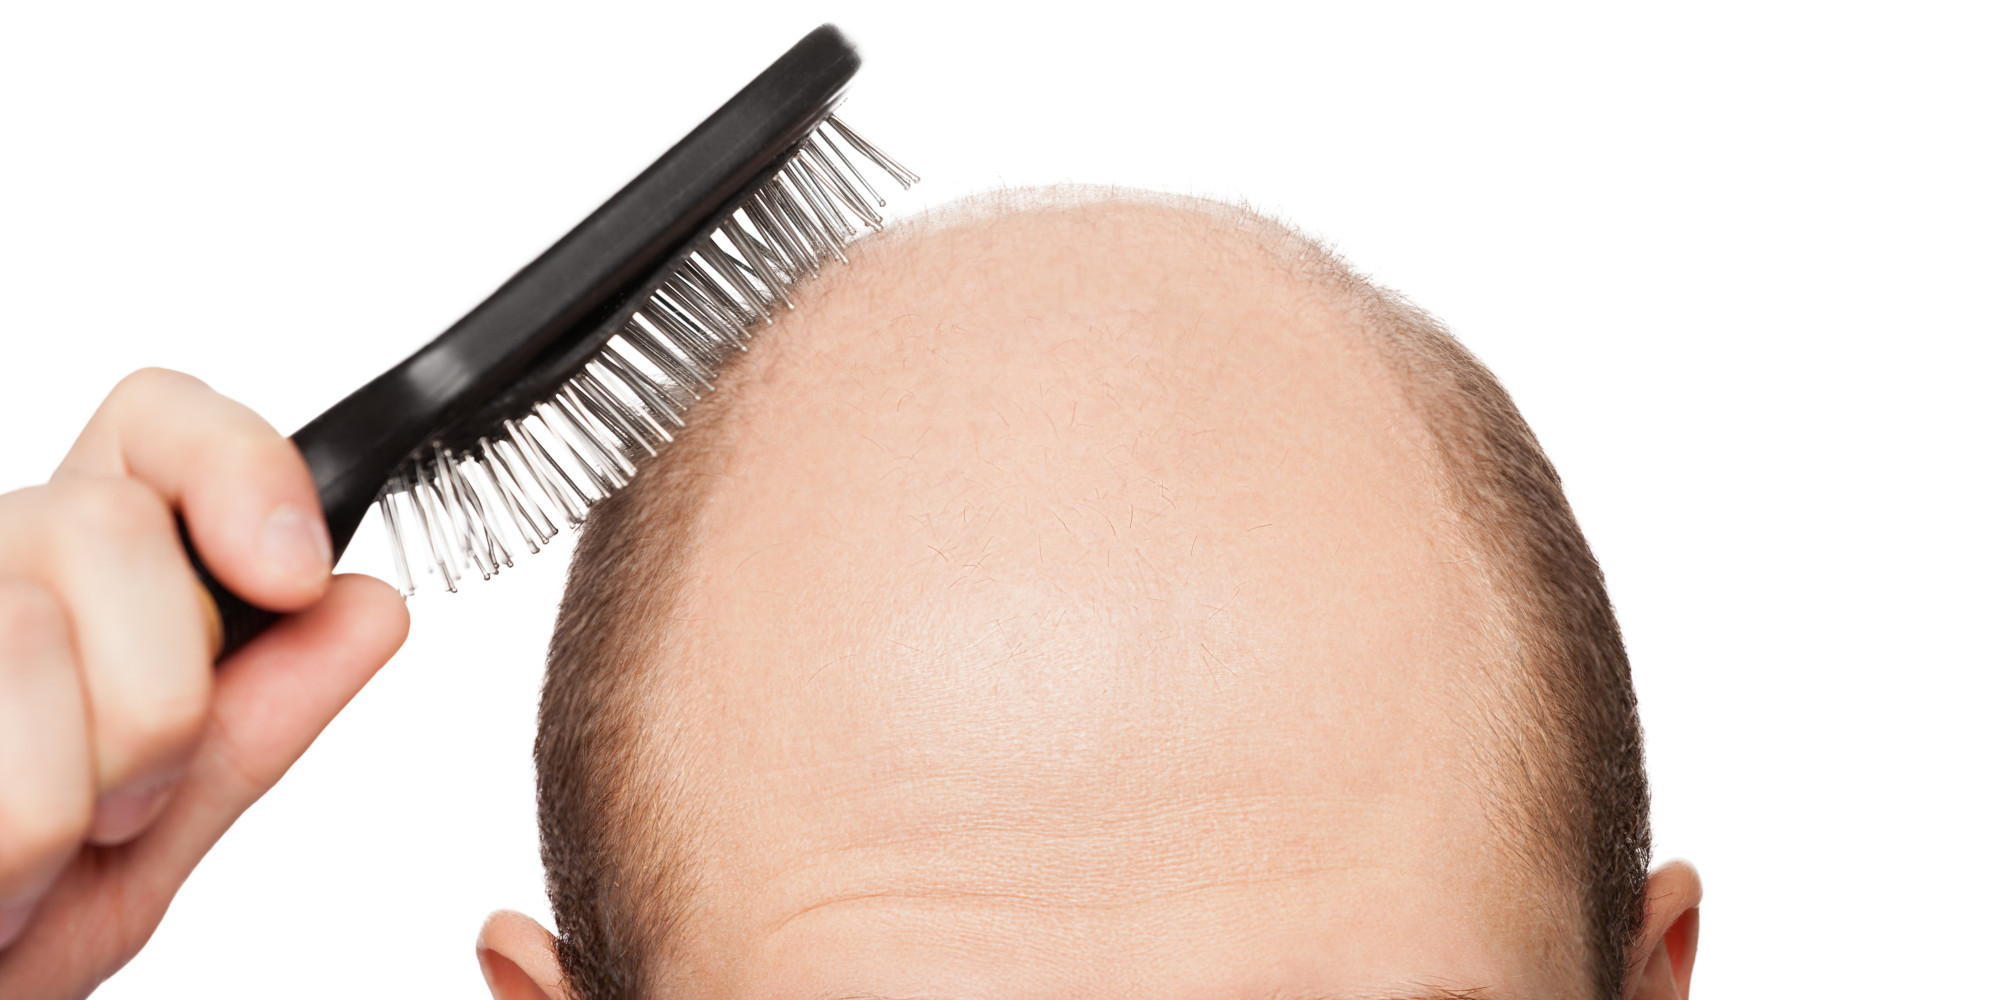 The Real Cause Of Your Hair Loss